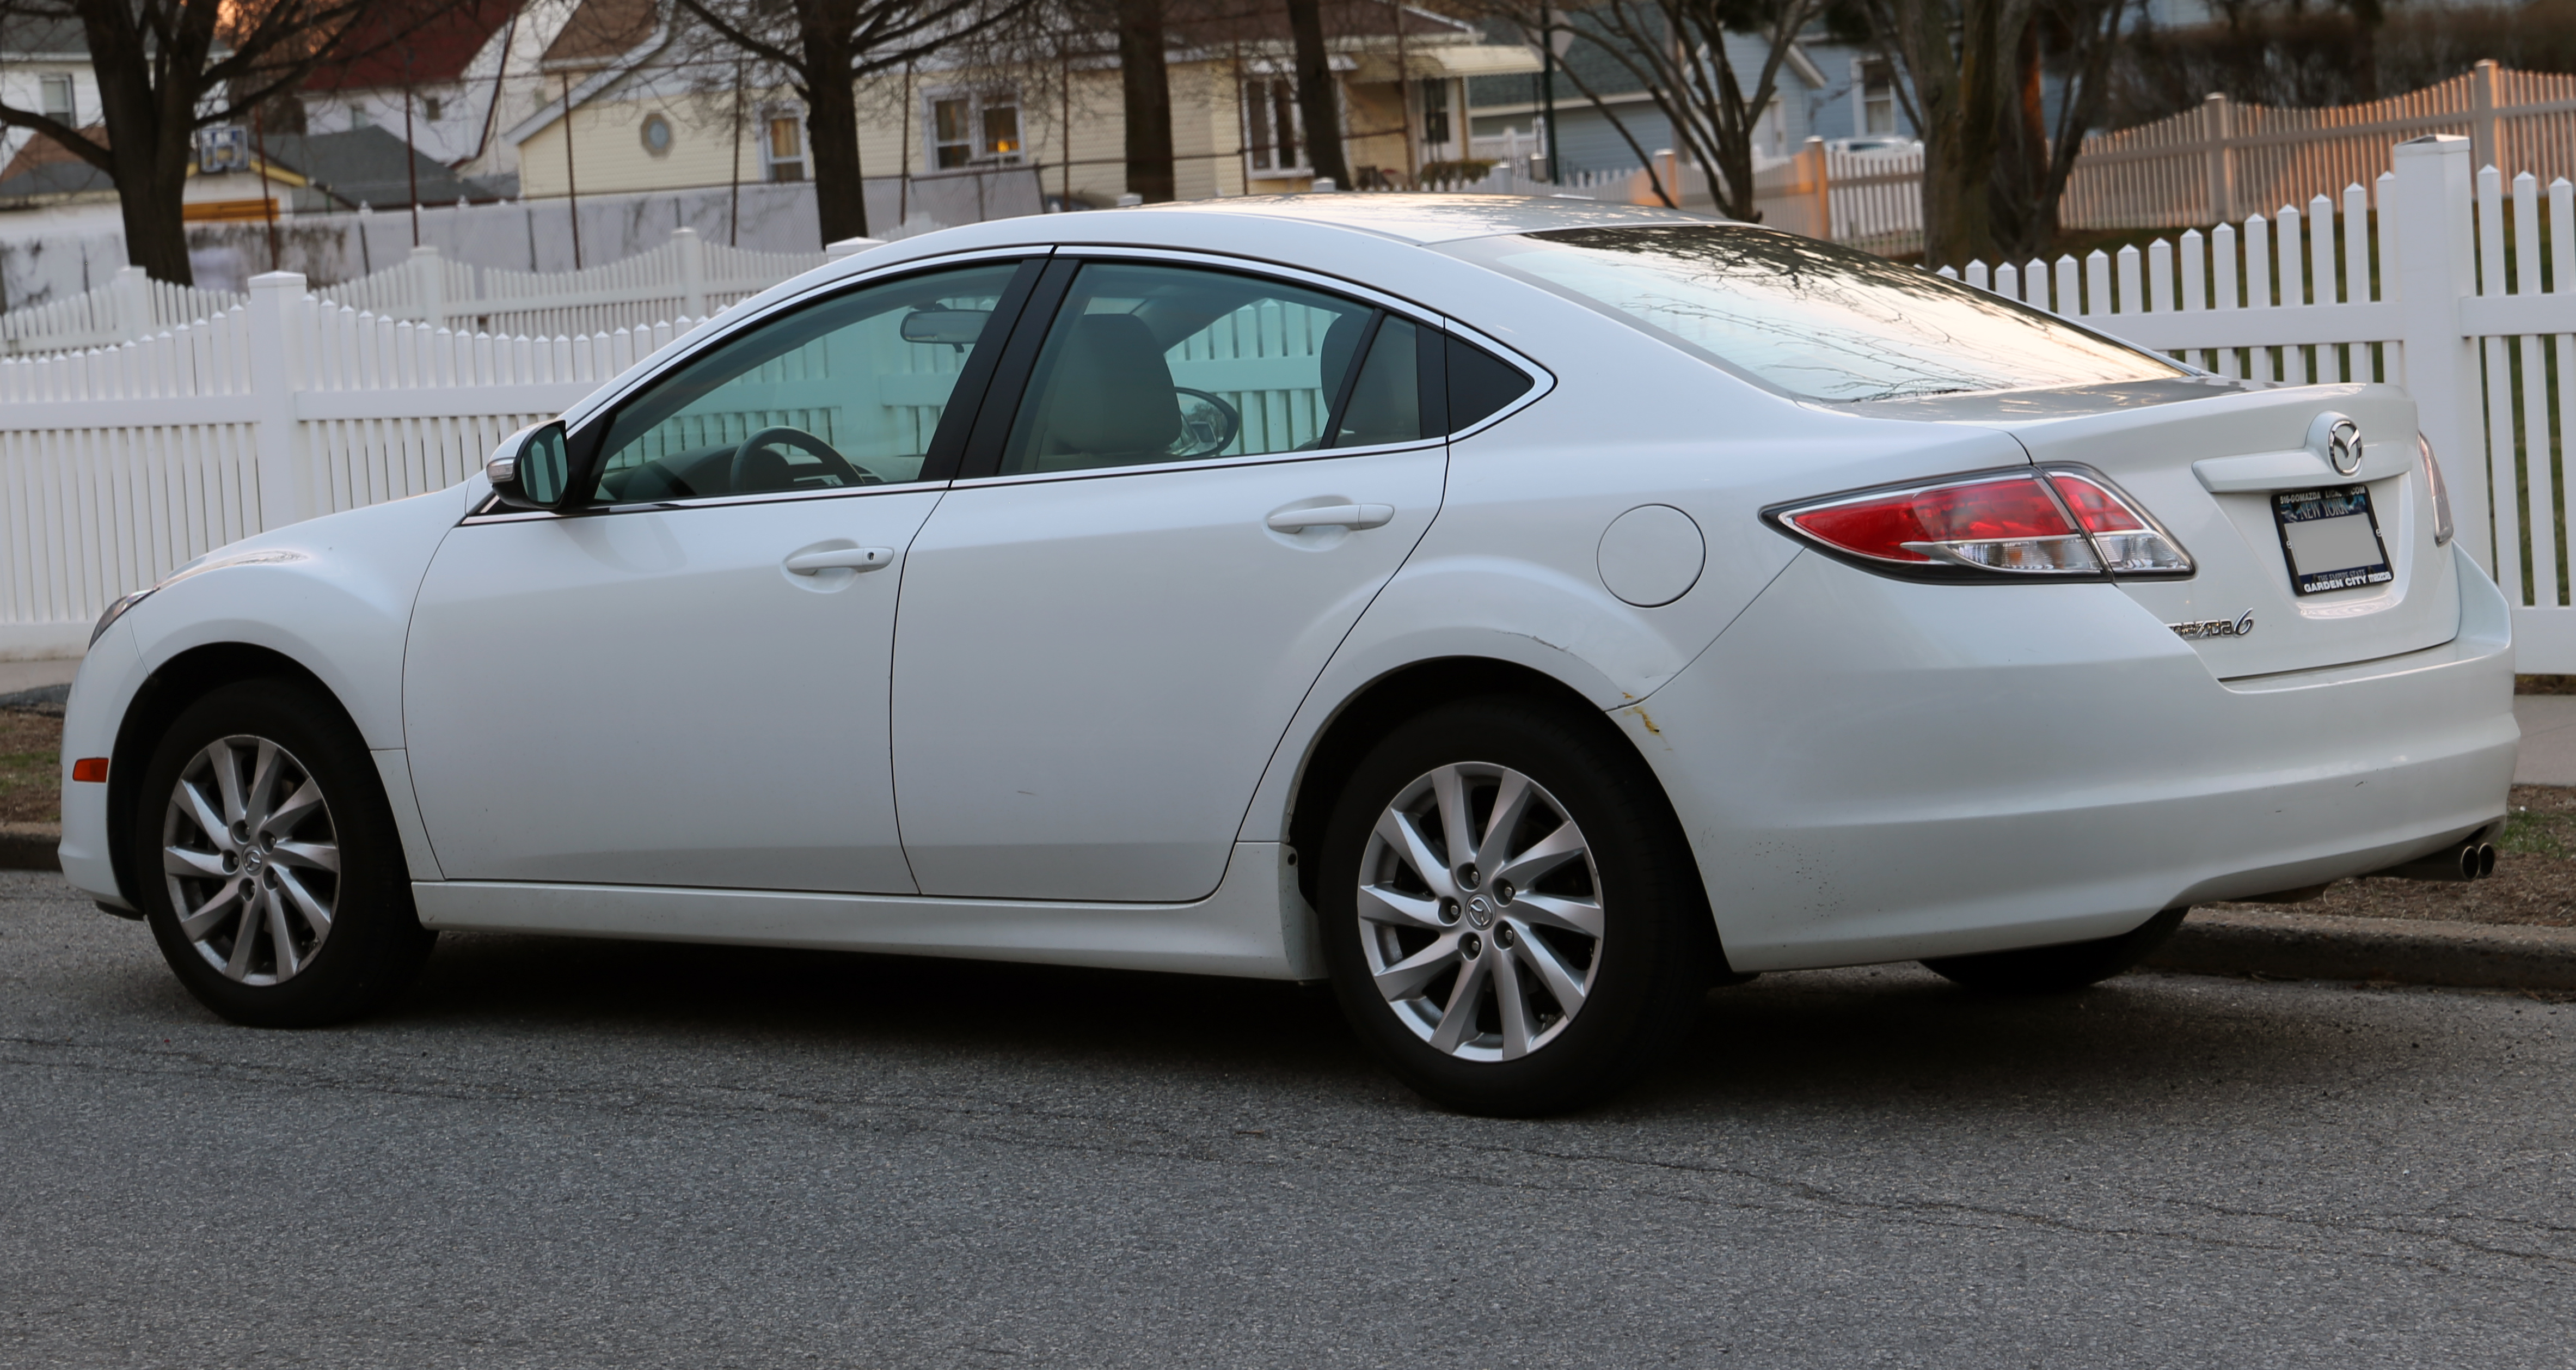 https://upload.wikimedia.org/wikipedia/commons/1/1f/2011_Mazda6i_Touring_Sedan_rear_left.jpg